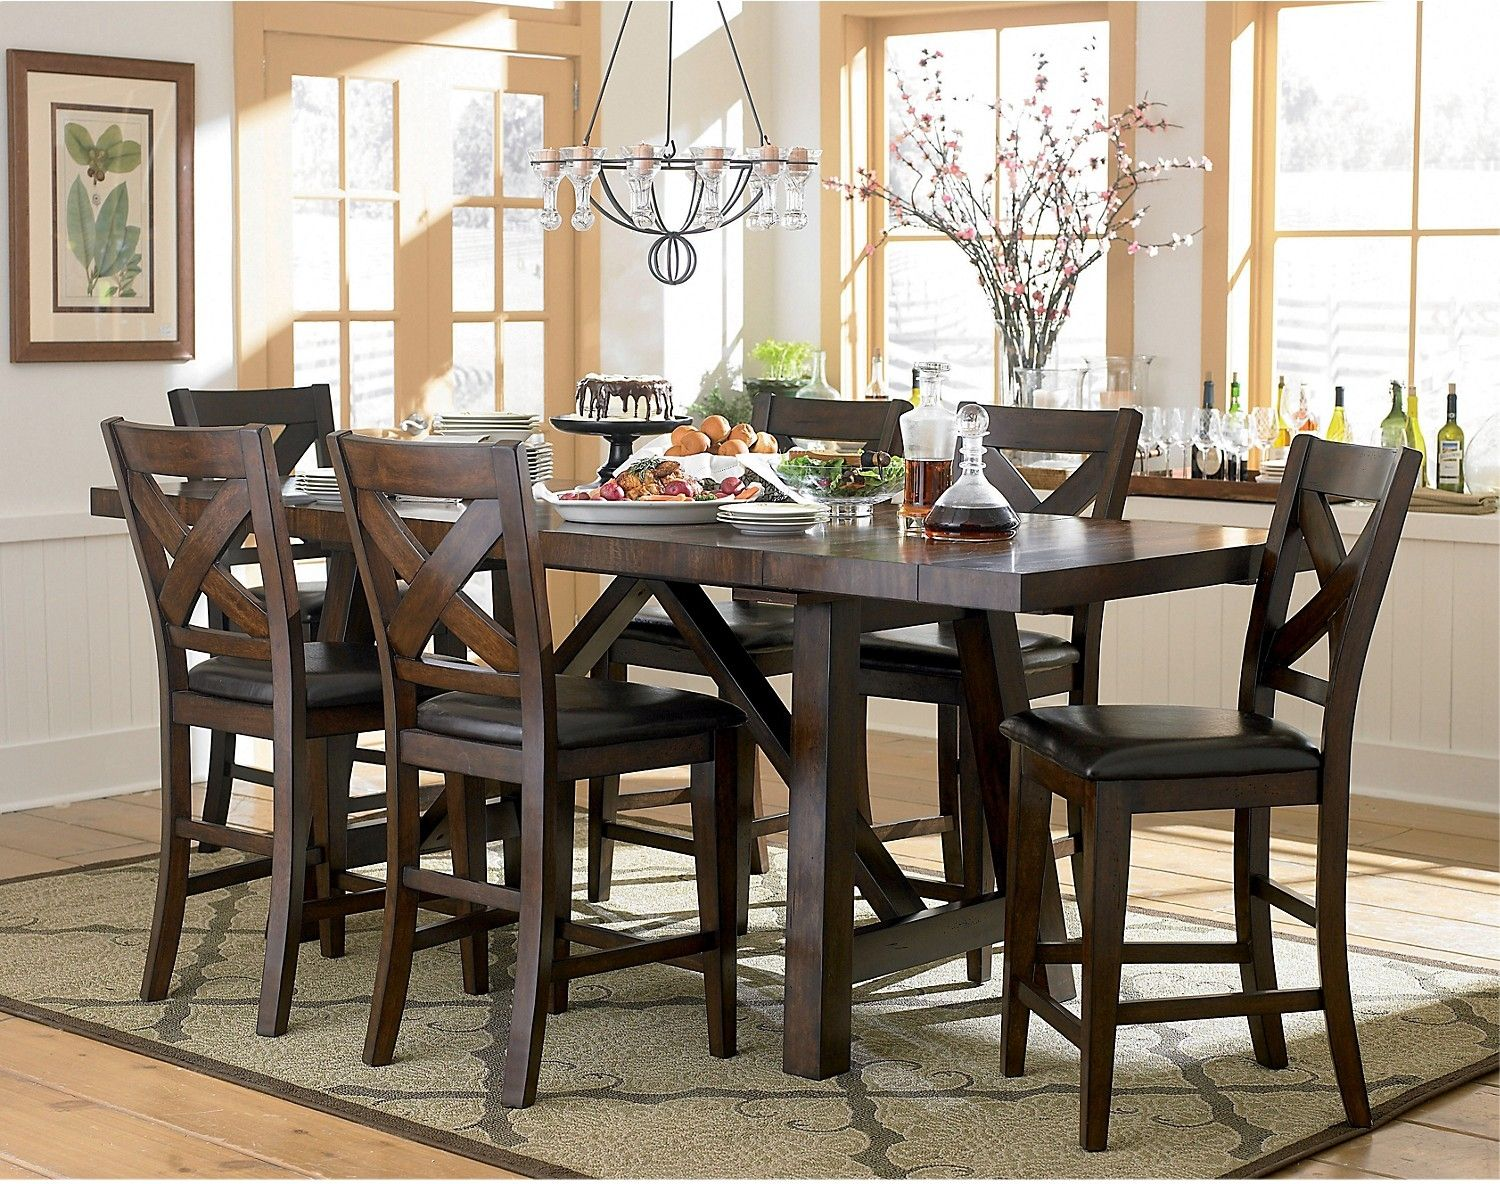 outstanding dining room accent pieces contemporary  d house  - outstanding dining room accent pieces contemporary  d house